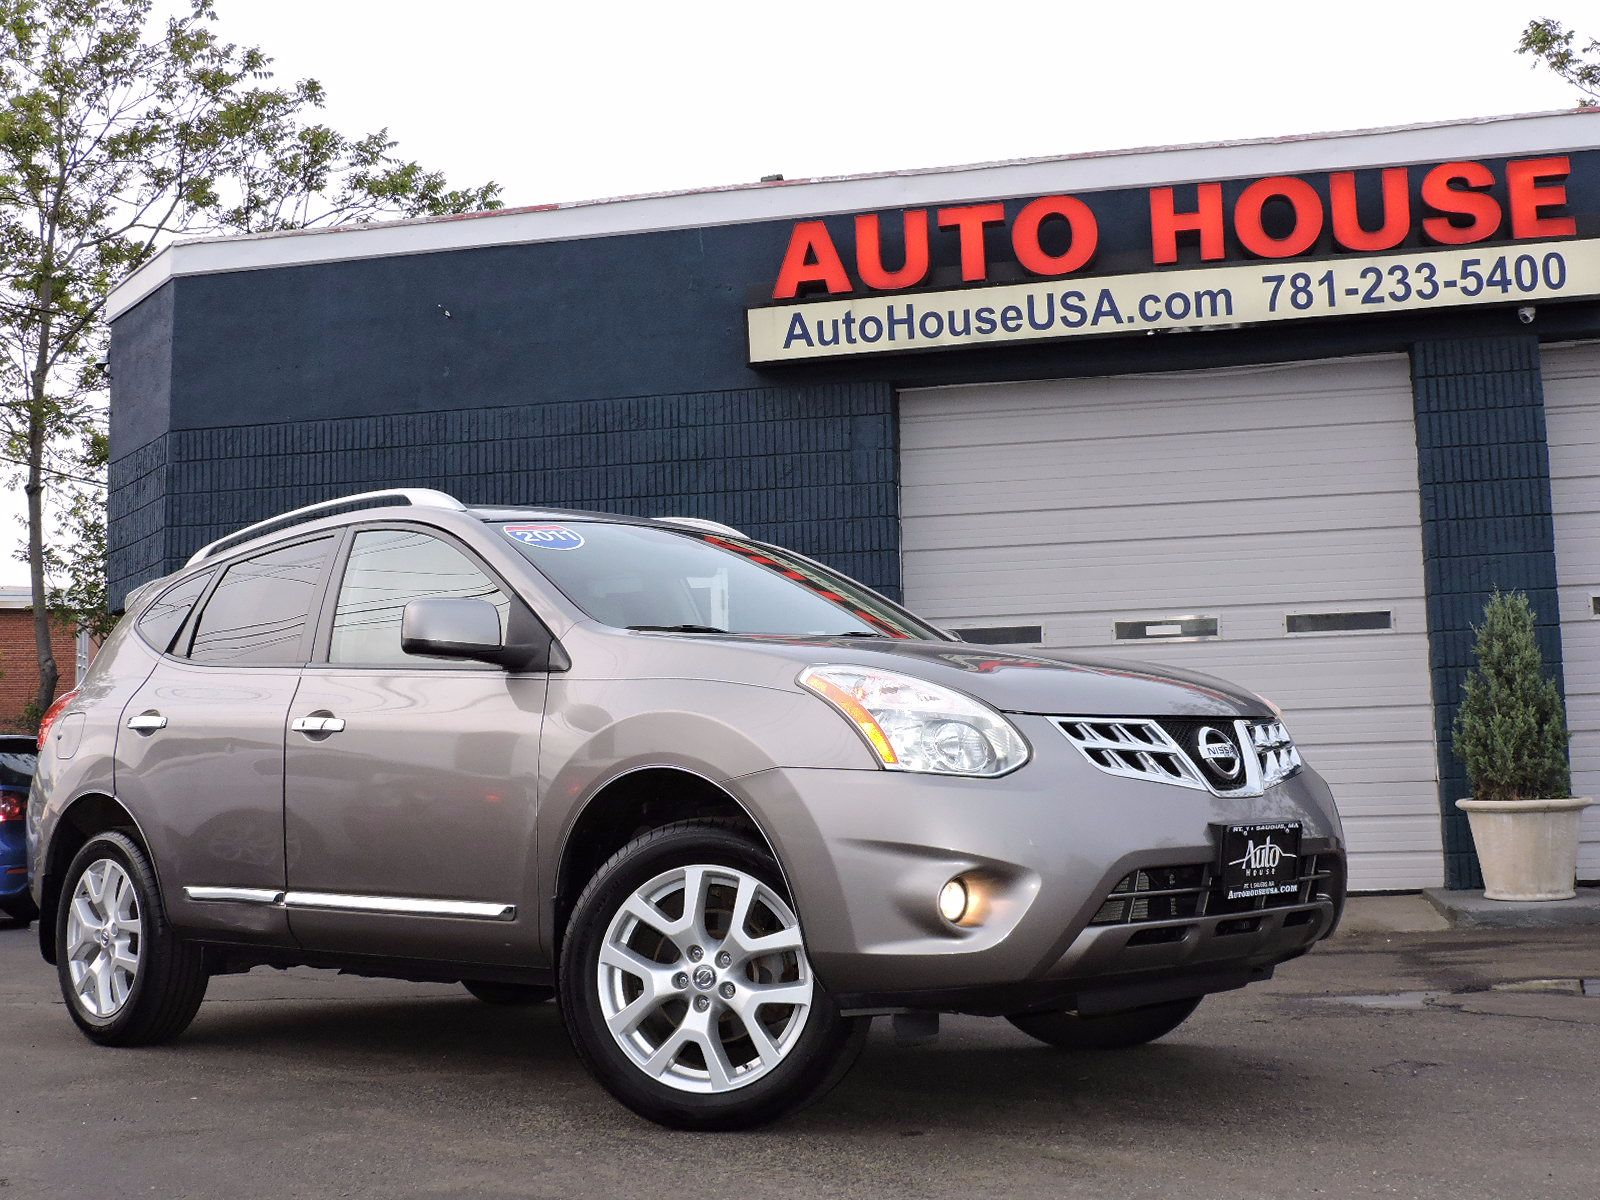 2011 Nissan Rogue SV - All Wheel Drive - Navigation